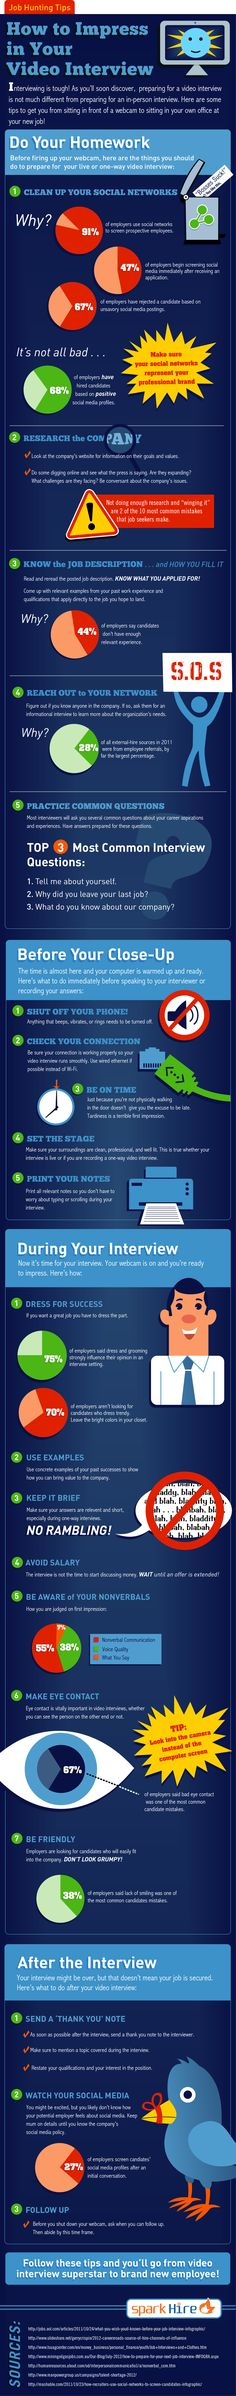 How-To-Impress-In-Your-Video-Interview-972-final